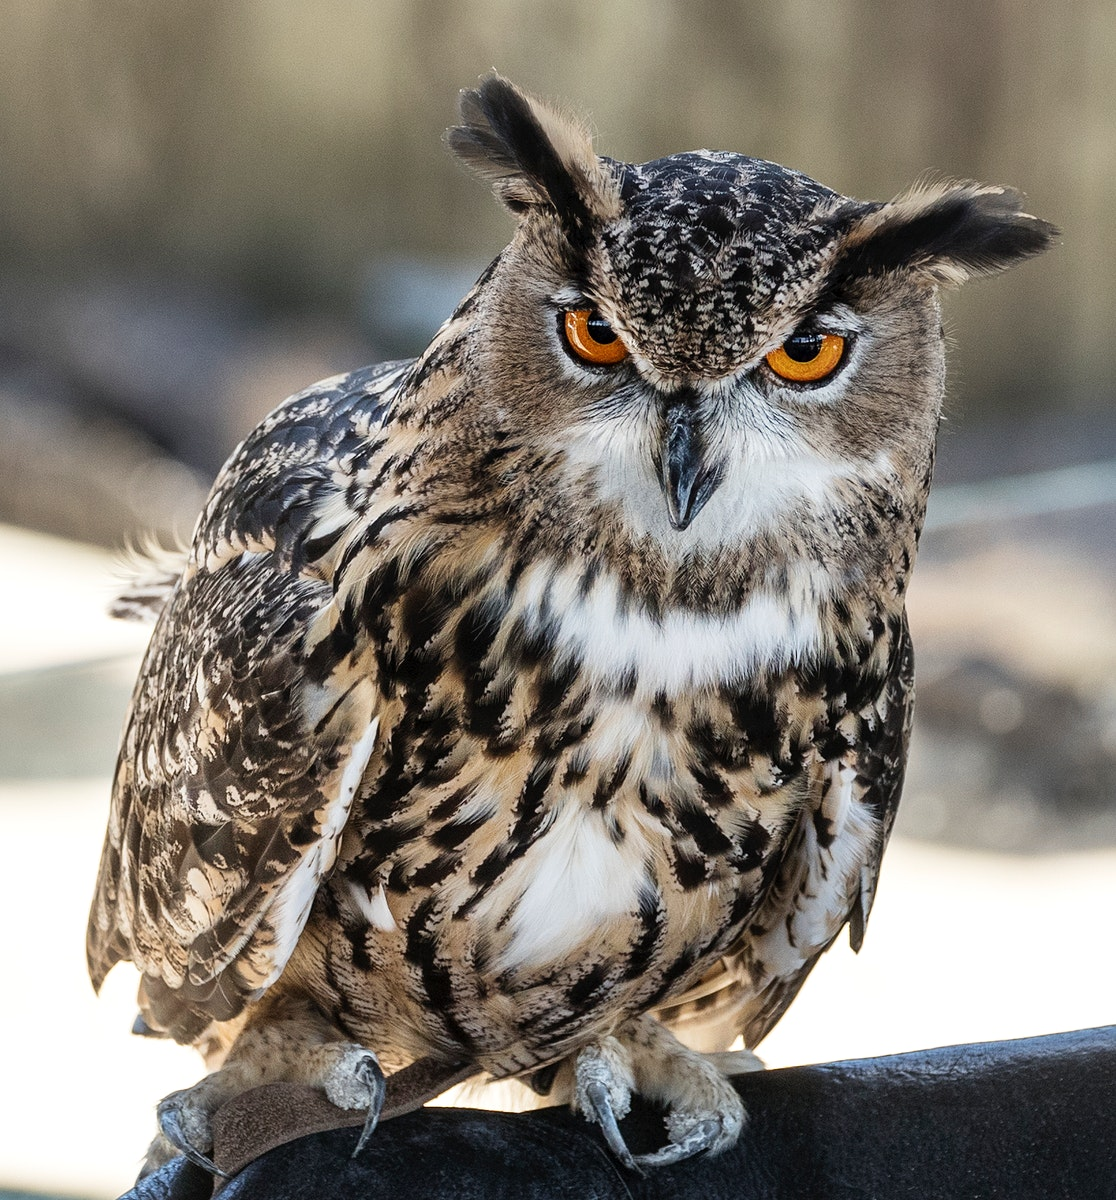 An owl at the Alligator Adventure in South Carolina. Original image from Carol M. Highsmith's America, Library of…